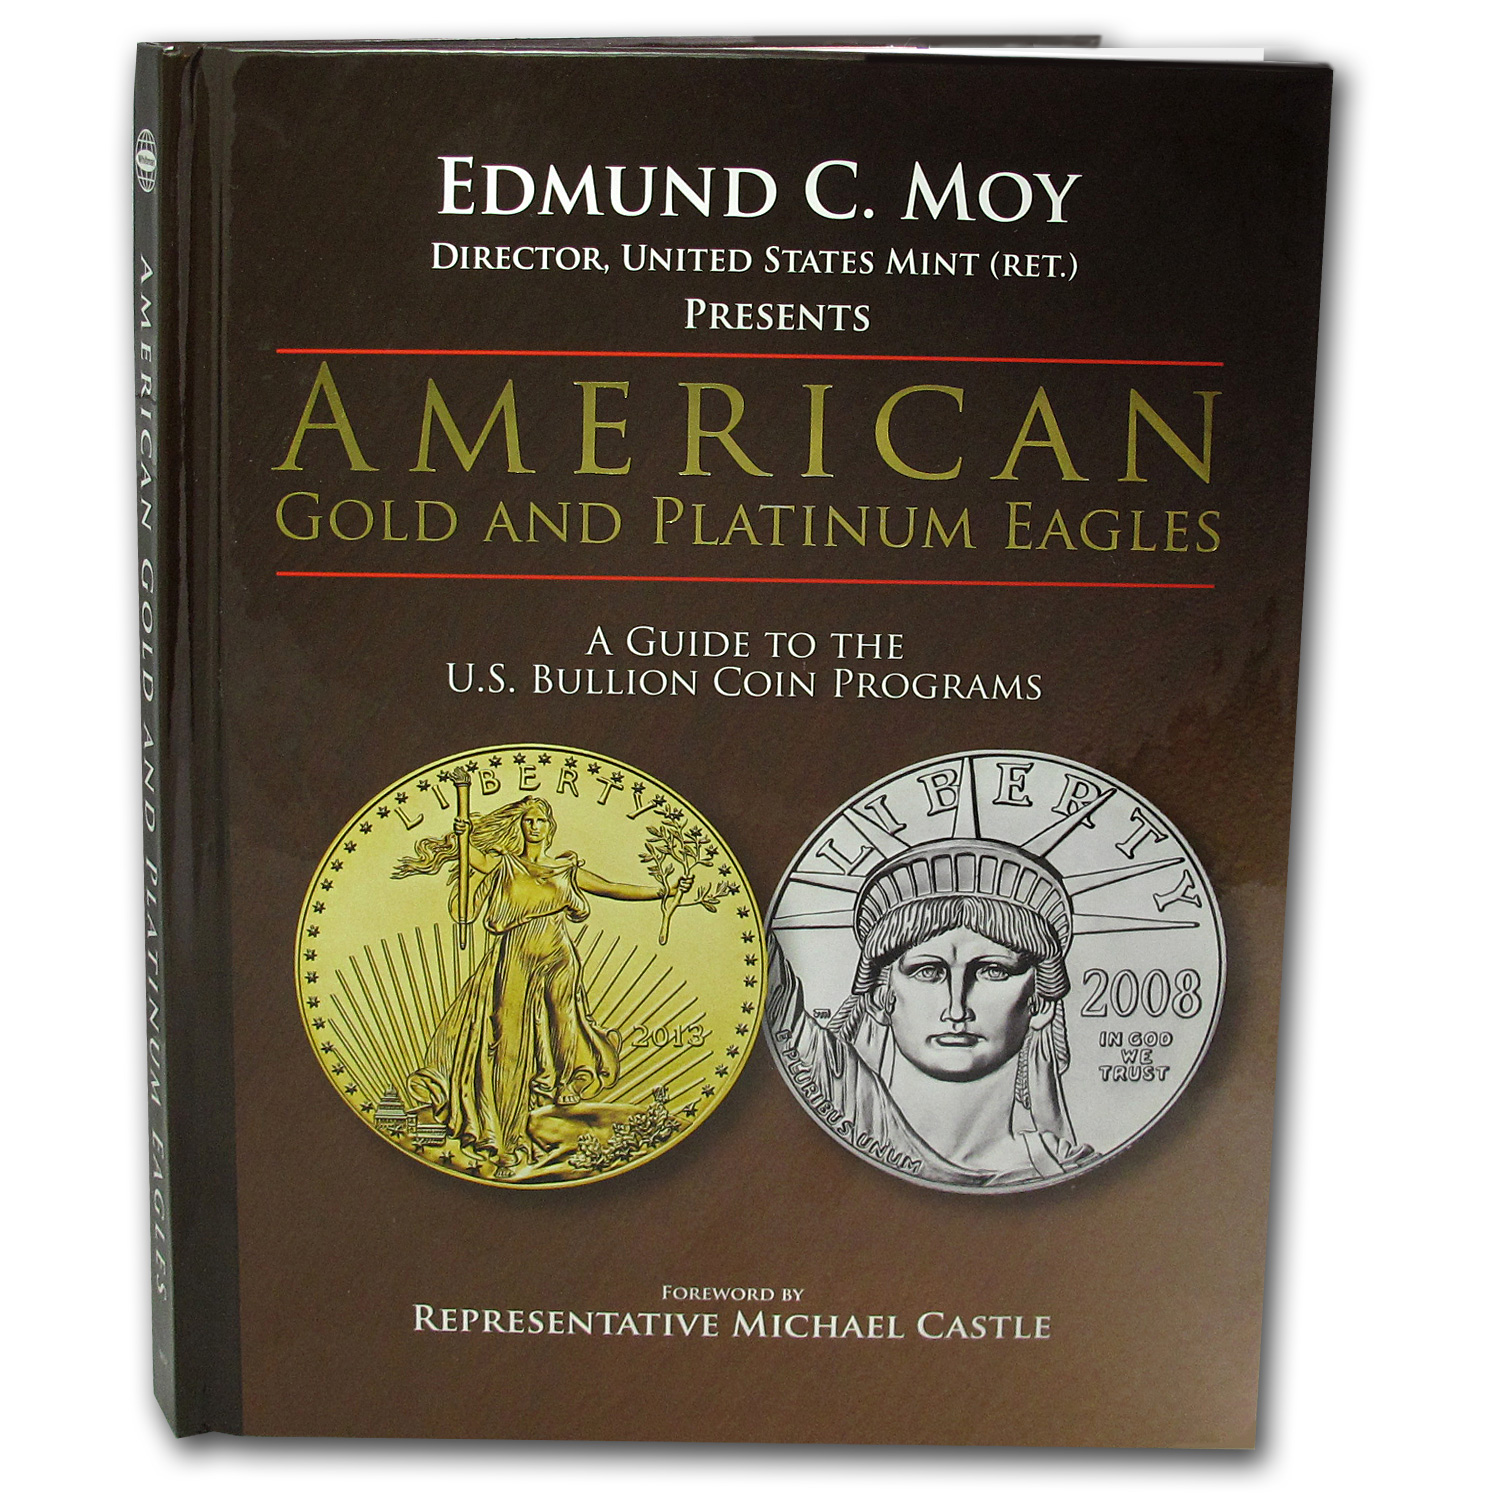 1997-2008 1/4 oz Platinum Eagle Complete 12 Coin Collection